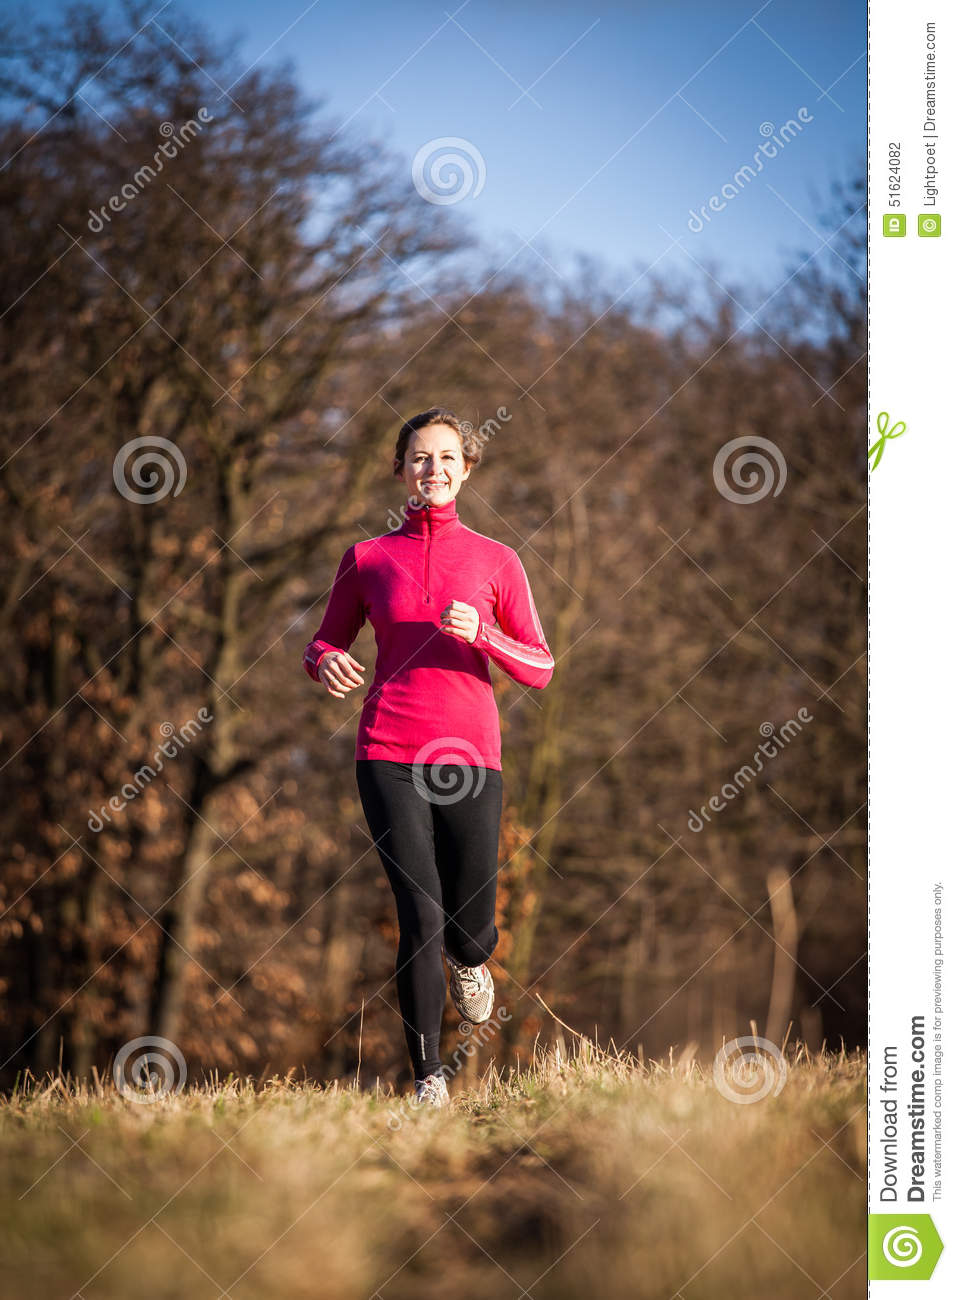 How to Choose Cold Weather Fitness Clothing How to Choose Cold Weather Fitness Clothing new pictures